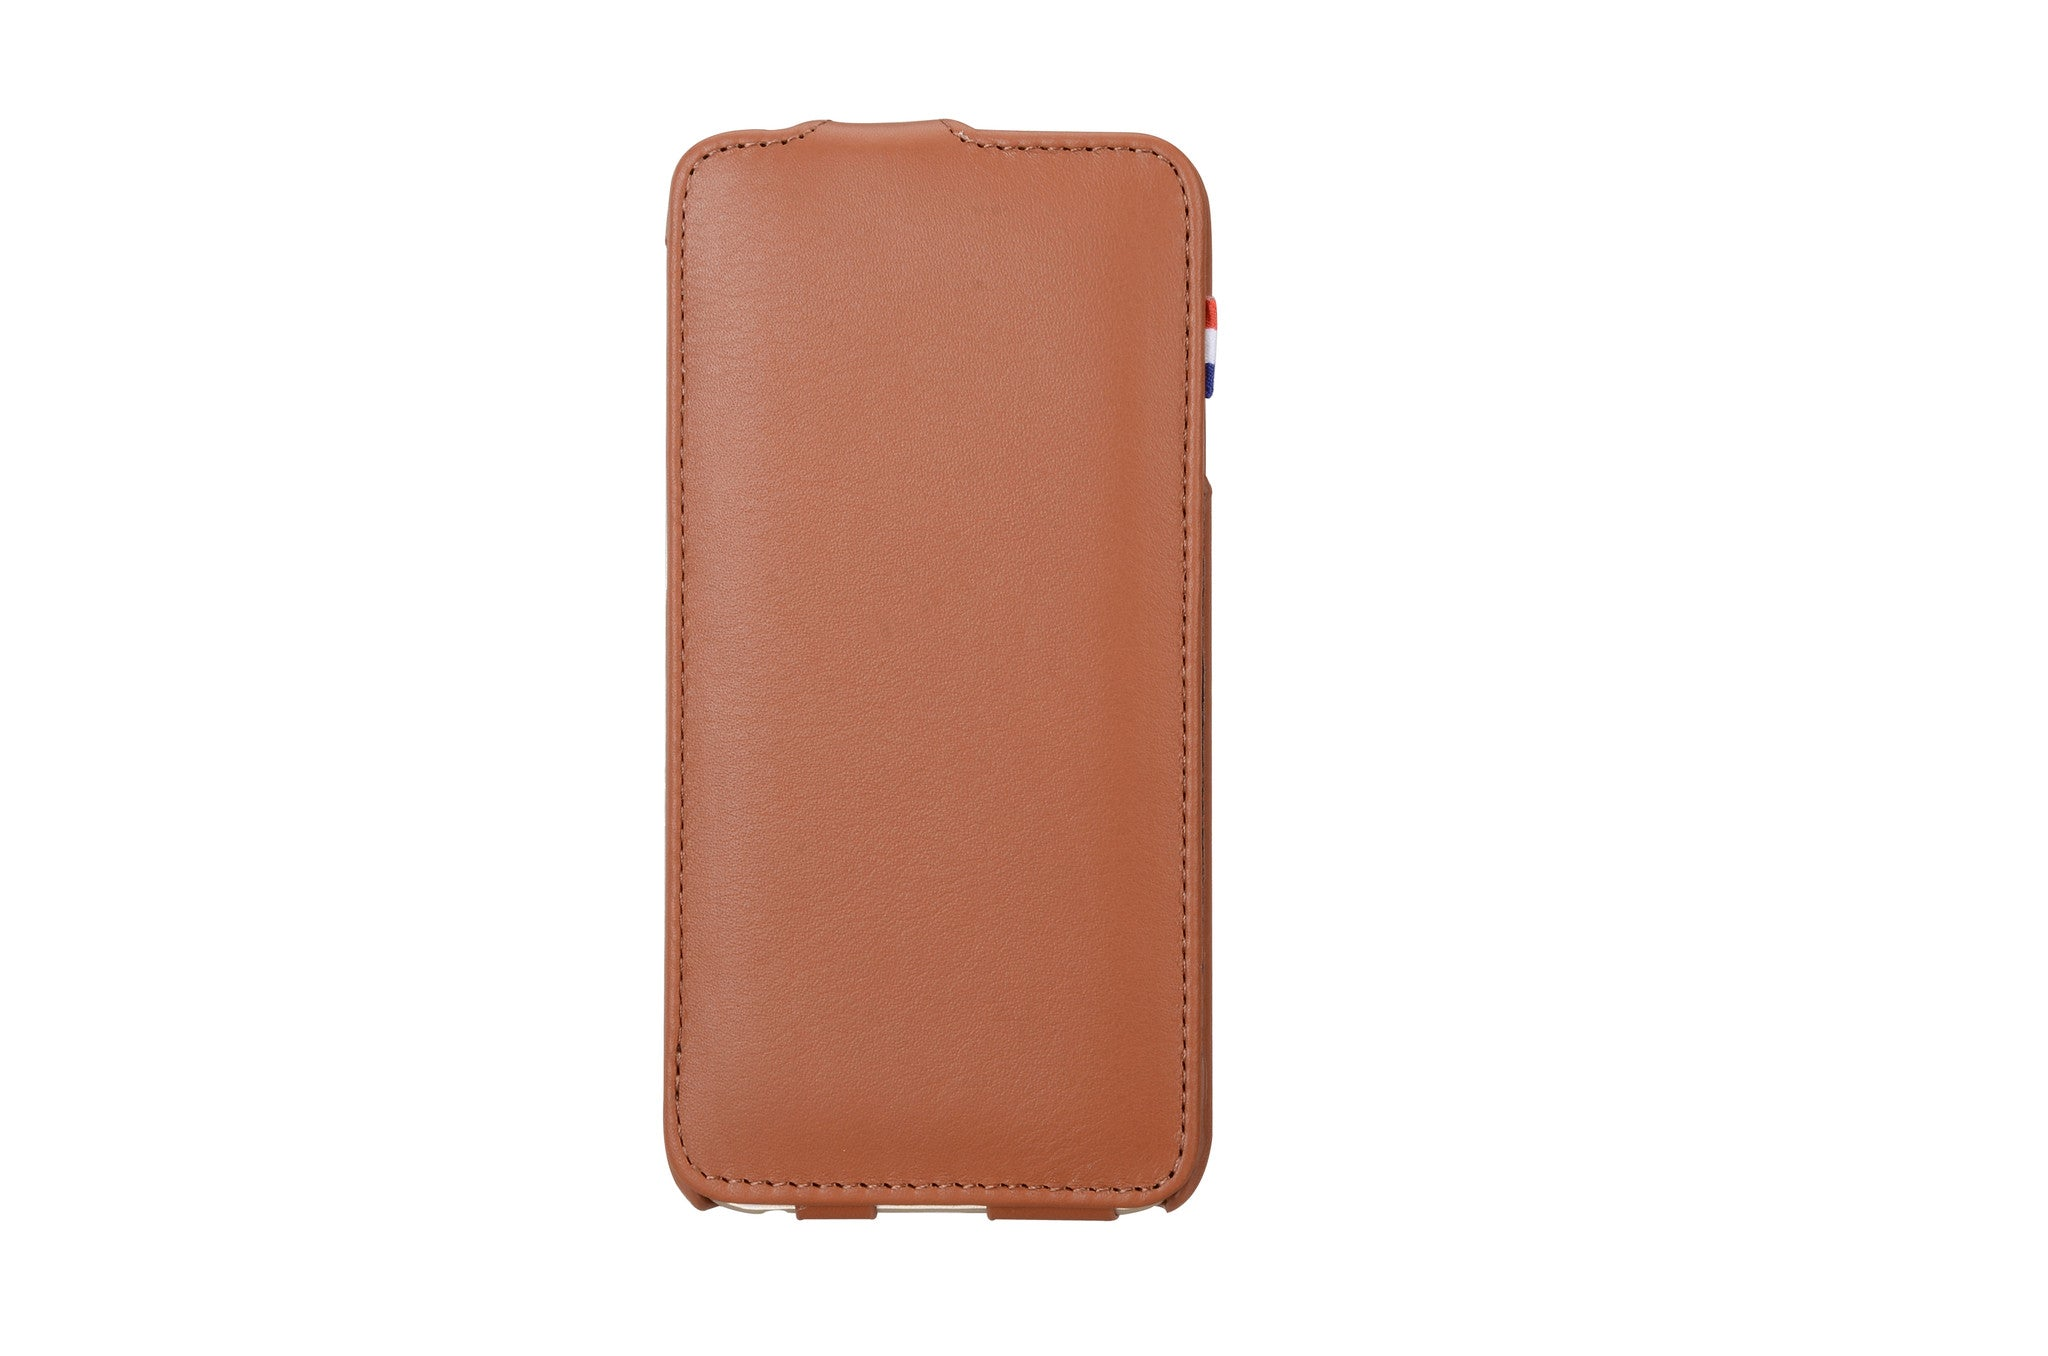 case 4 genuine motor products Custom made to order genuine leather phone cases, wallets, bags and totes custom tailored iphone and ipad cases to ensure proper fitting with or without 3rd party cases or battery.